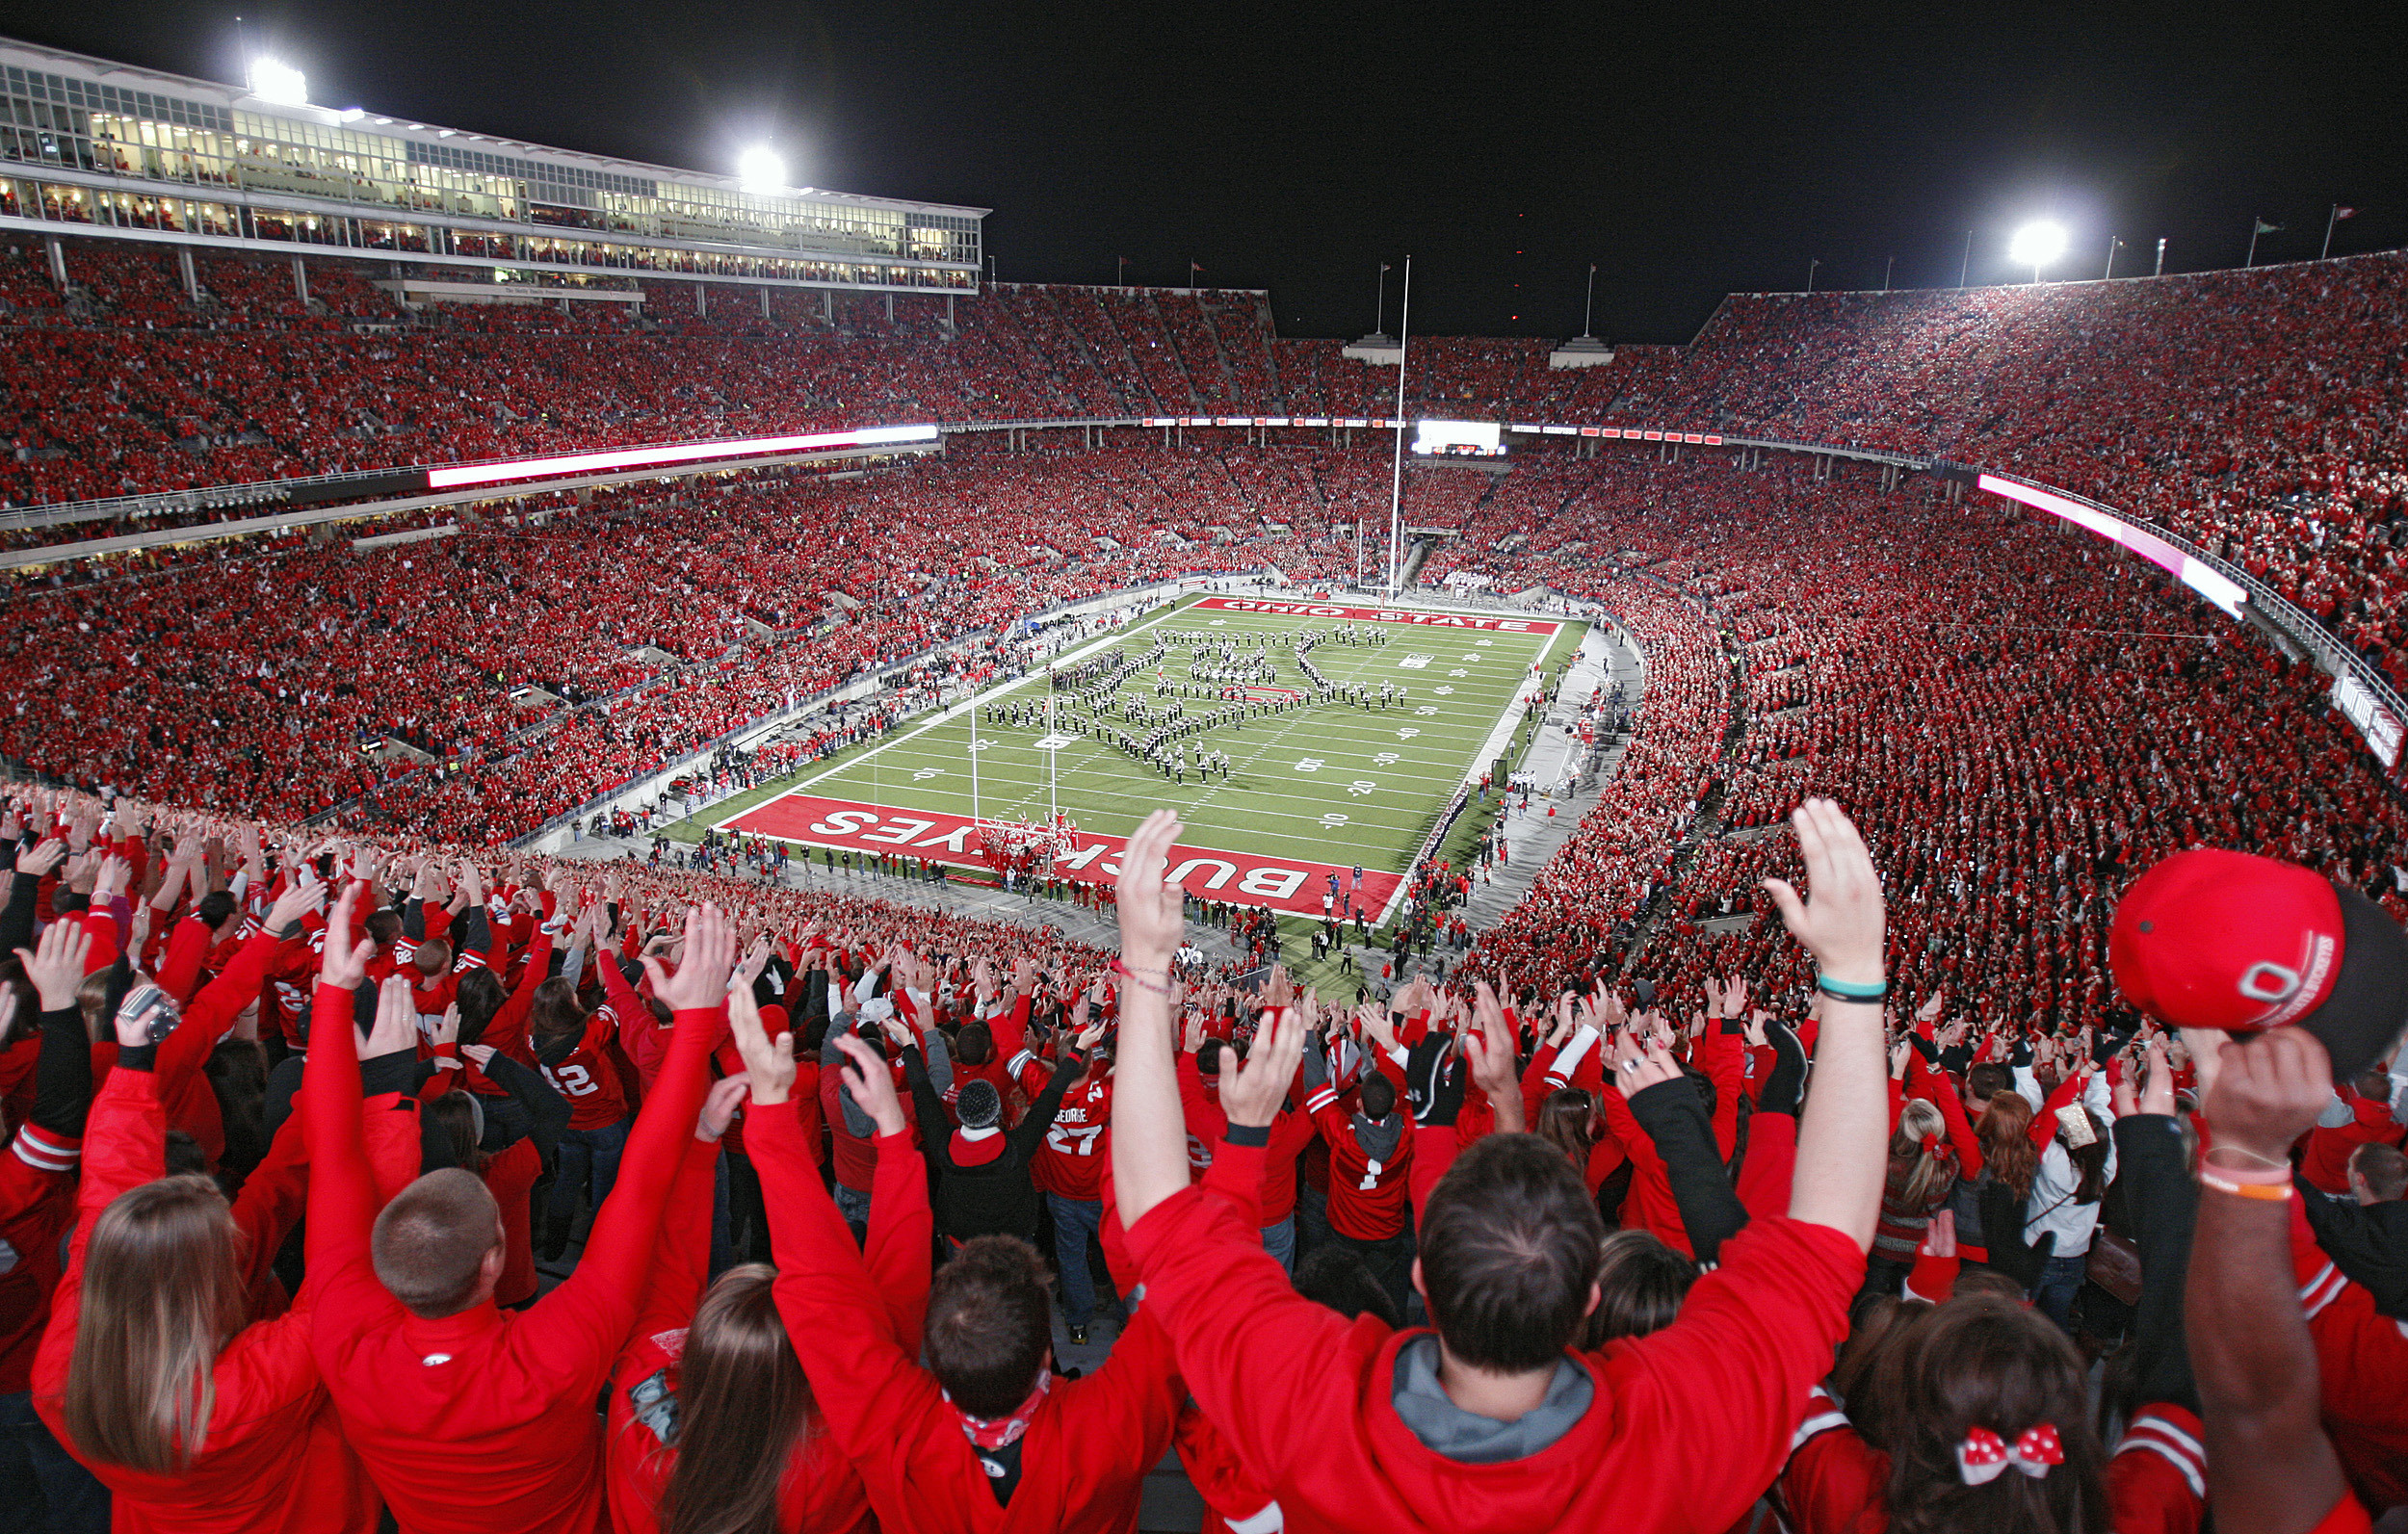 1920x1200 Download Stadium Scarlet Ohio State Football Hd Wallpapers